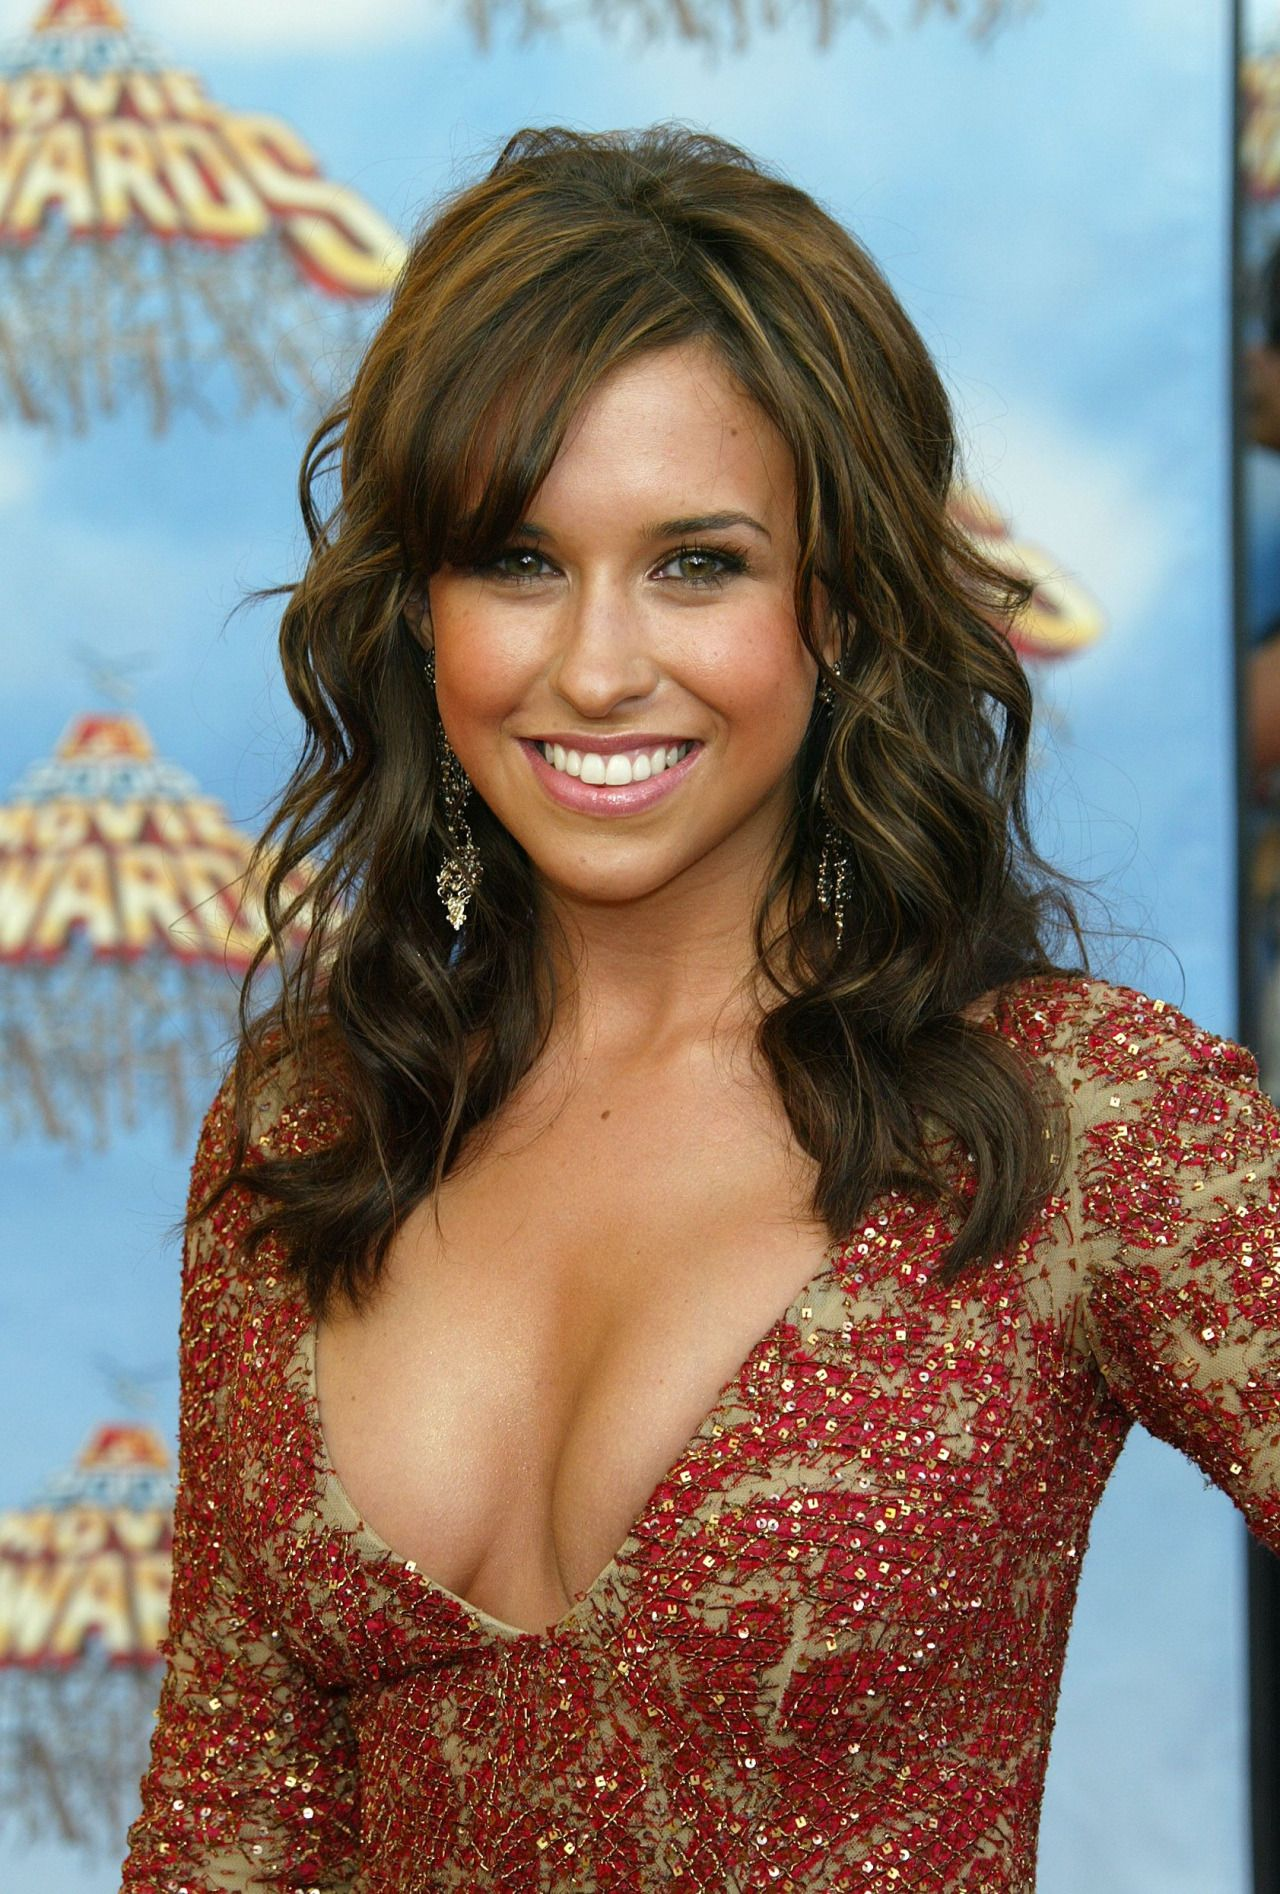 Lacy chabert - request Nude Celebs Forum new pictures